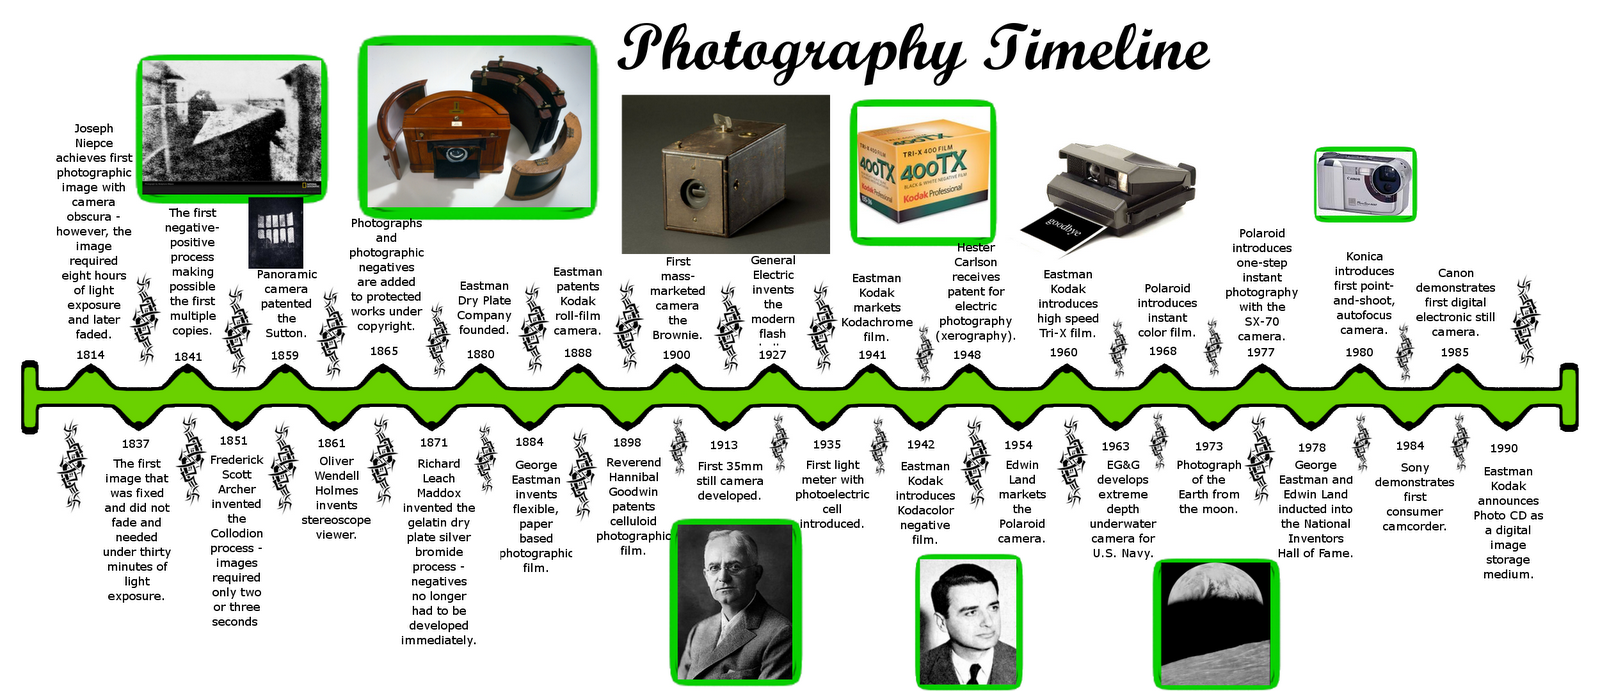 photography timeline Vertical timeline harvard's history of photography timeline viewed through photograph collections at harvard university spanning the history of photography.